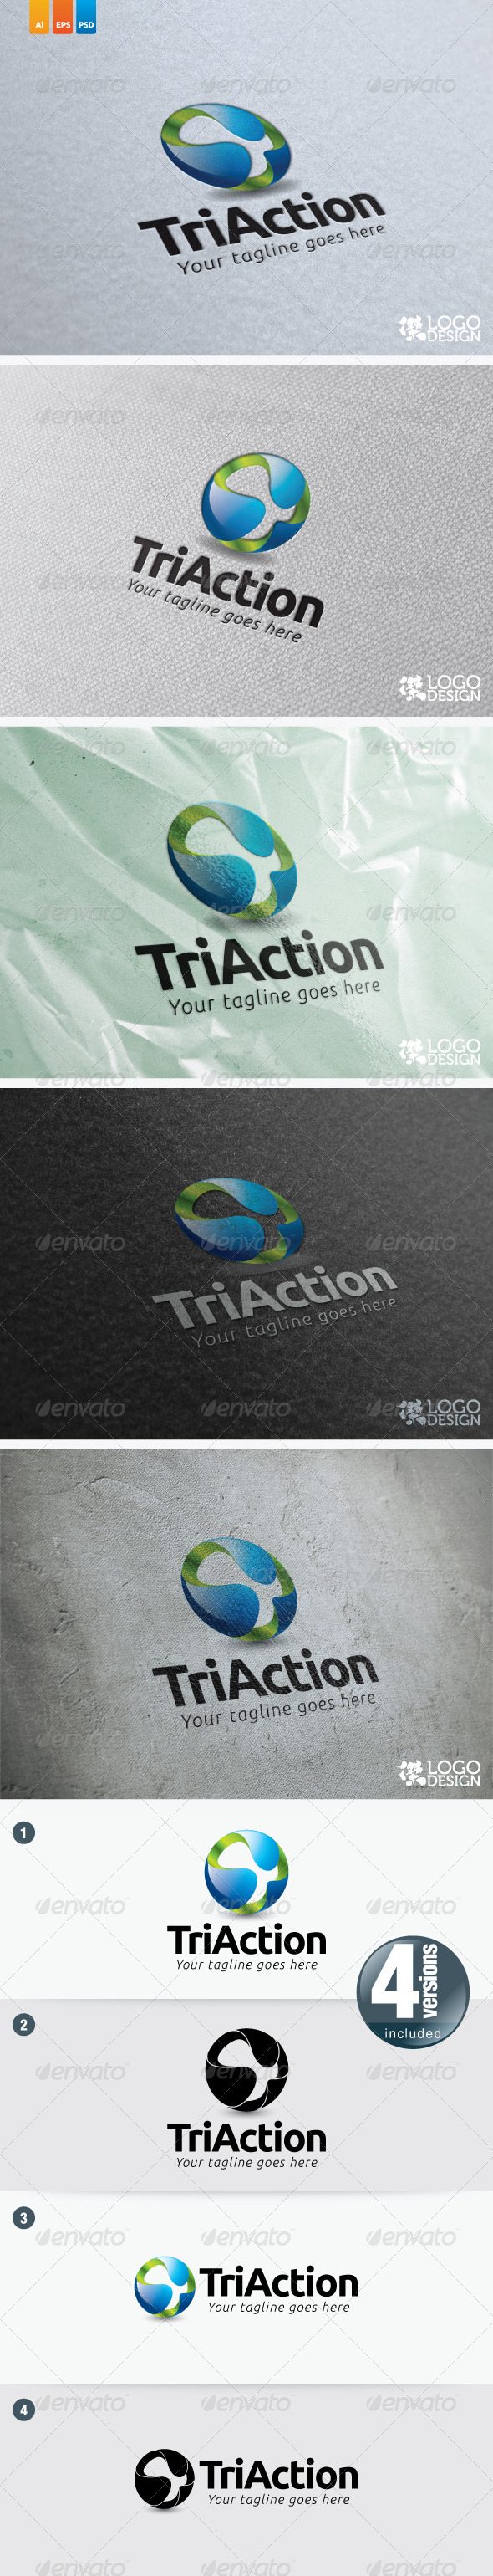 Triaction - 3d Abstract